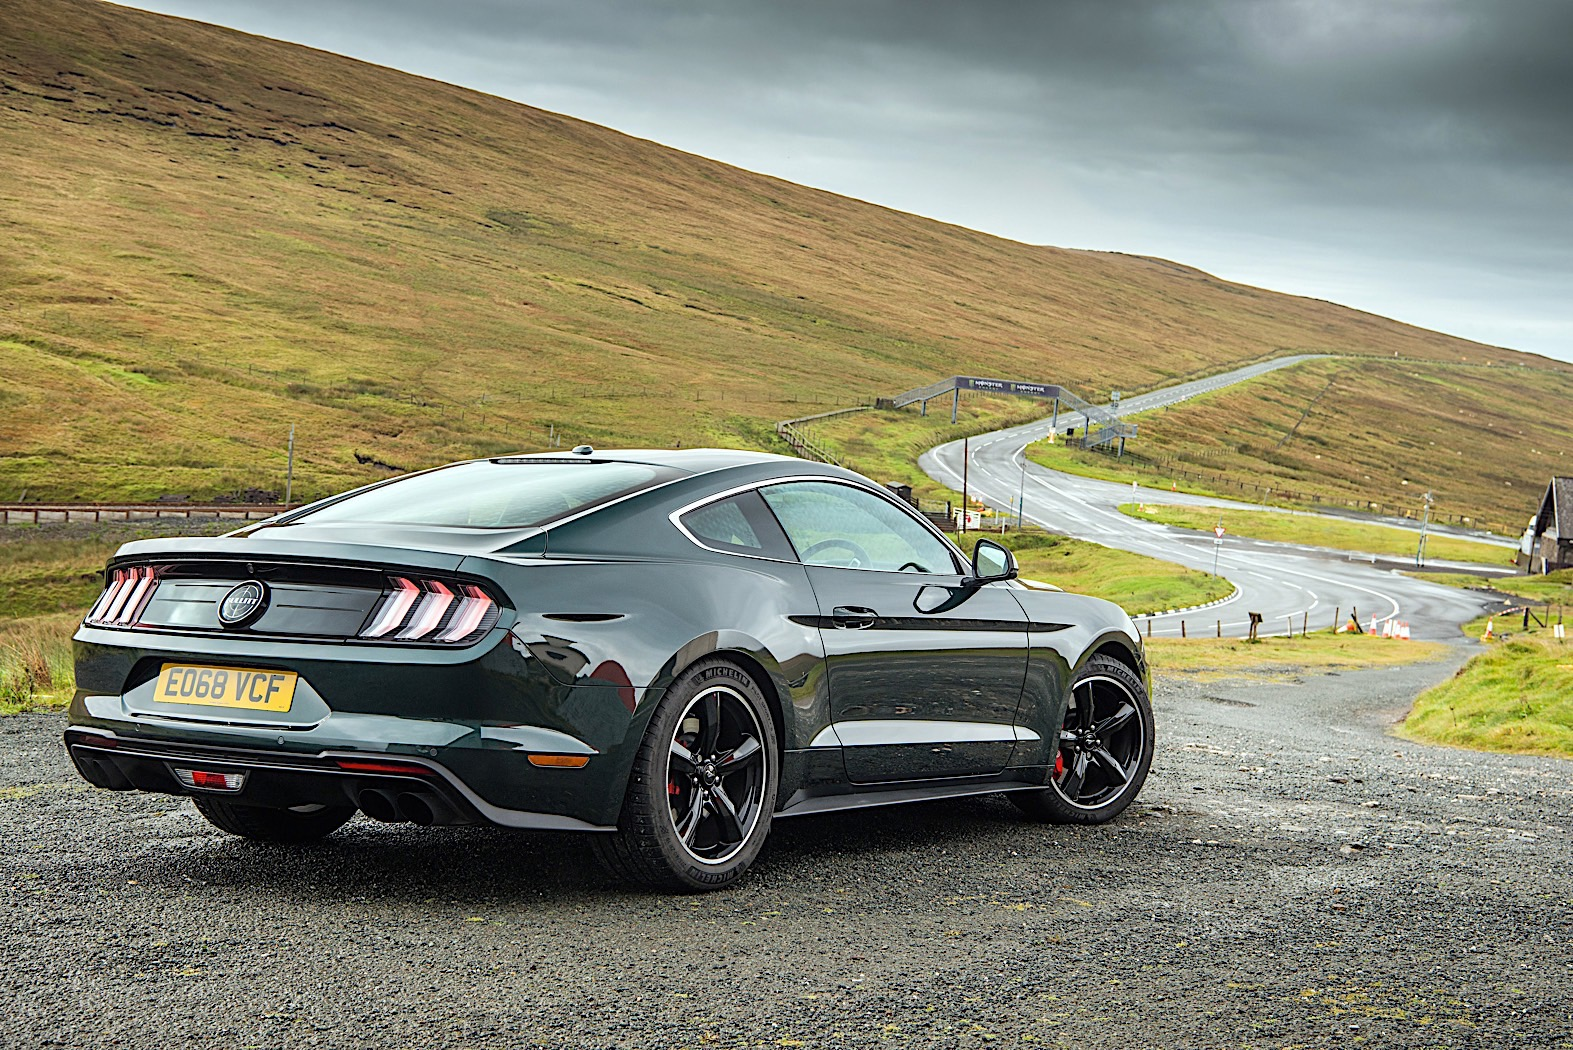 Ford Mustang Bullitt Roars on the No-Speed Limit Isle of Man